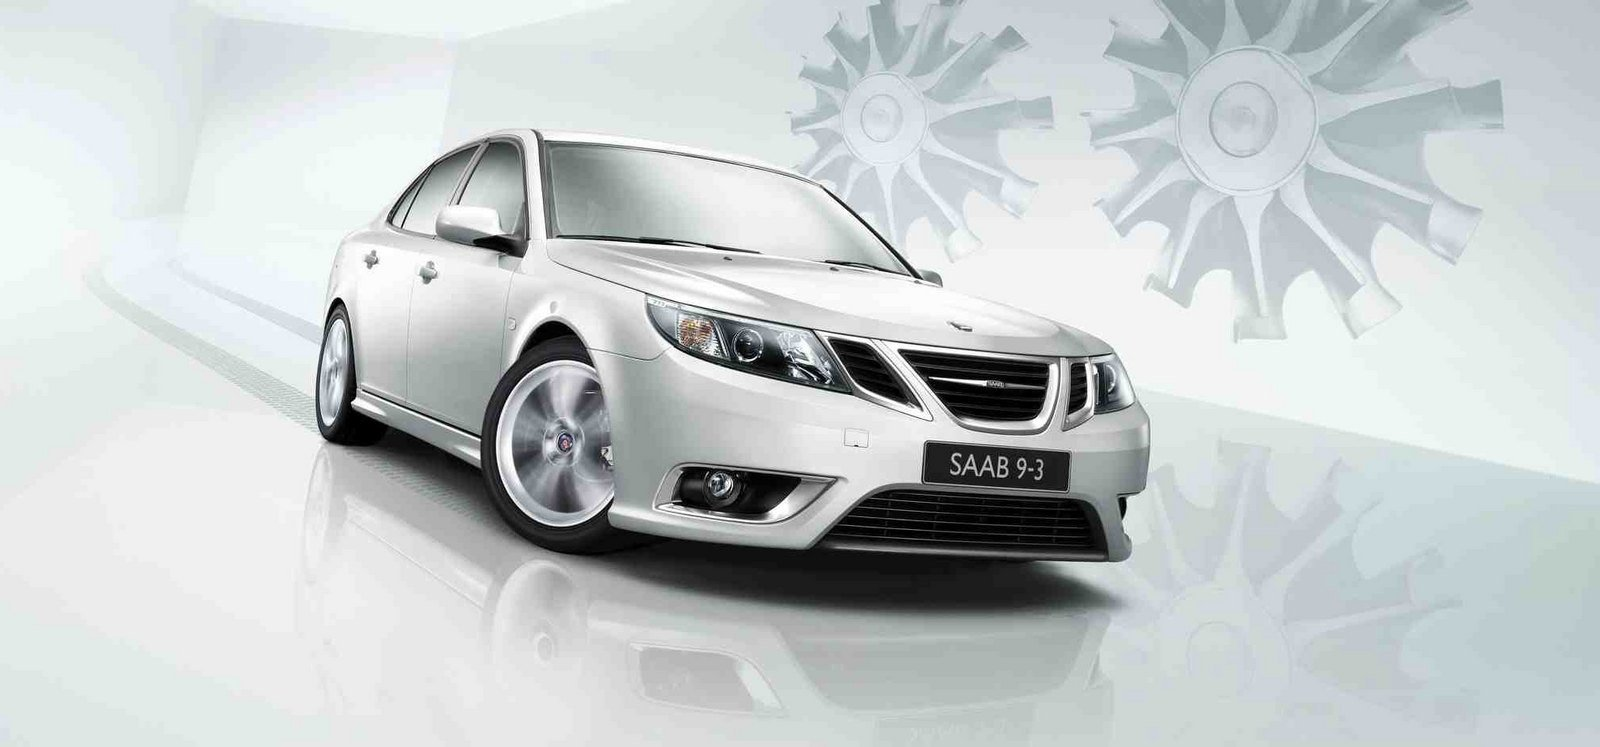 Performance Exhaust Systems >> 2011 Saab 9-3 By Hirsch | Top Speed